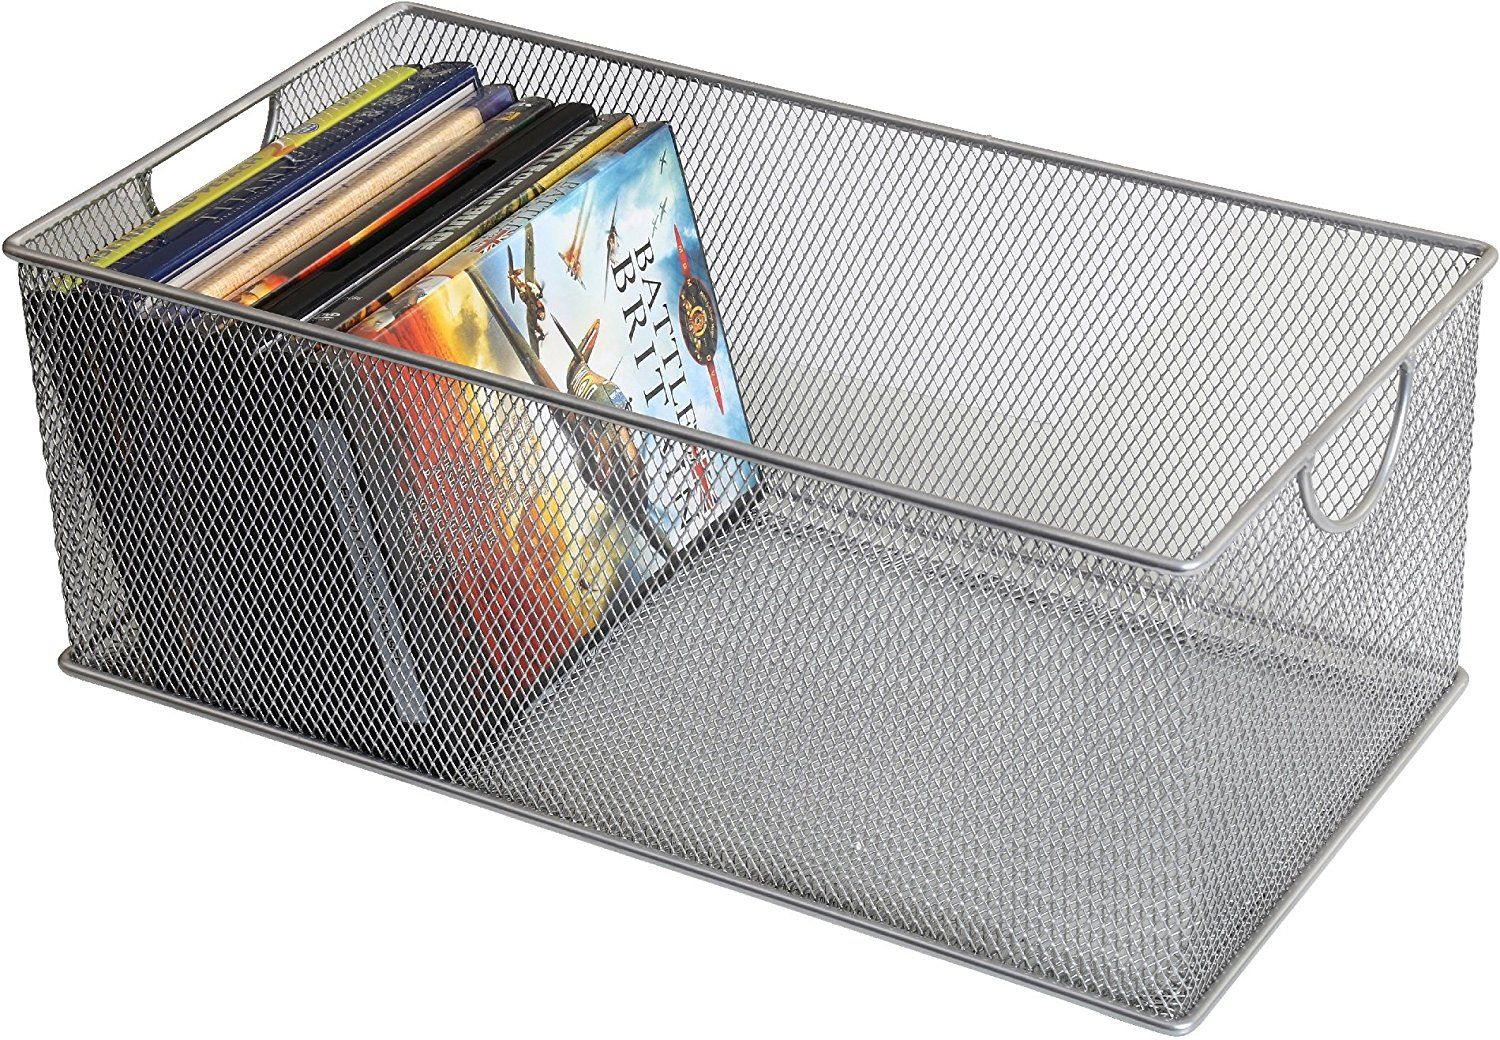 Amazon.com: Ybm Home Mesh Storage Box, Silver Mesh Great for School Home or Office Supplies, Books , Computer Discs and More 2302 (1, Zip Box- 8 X 4.5 X 4.8 Inches): Home & Kitchen